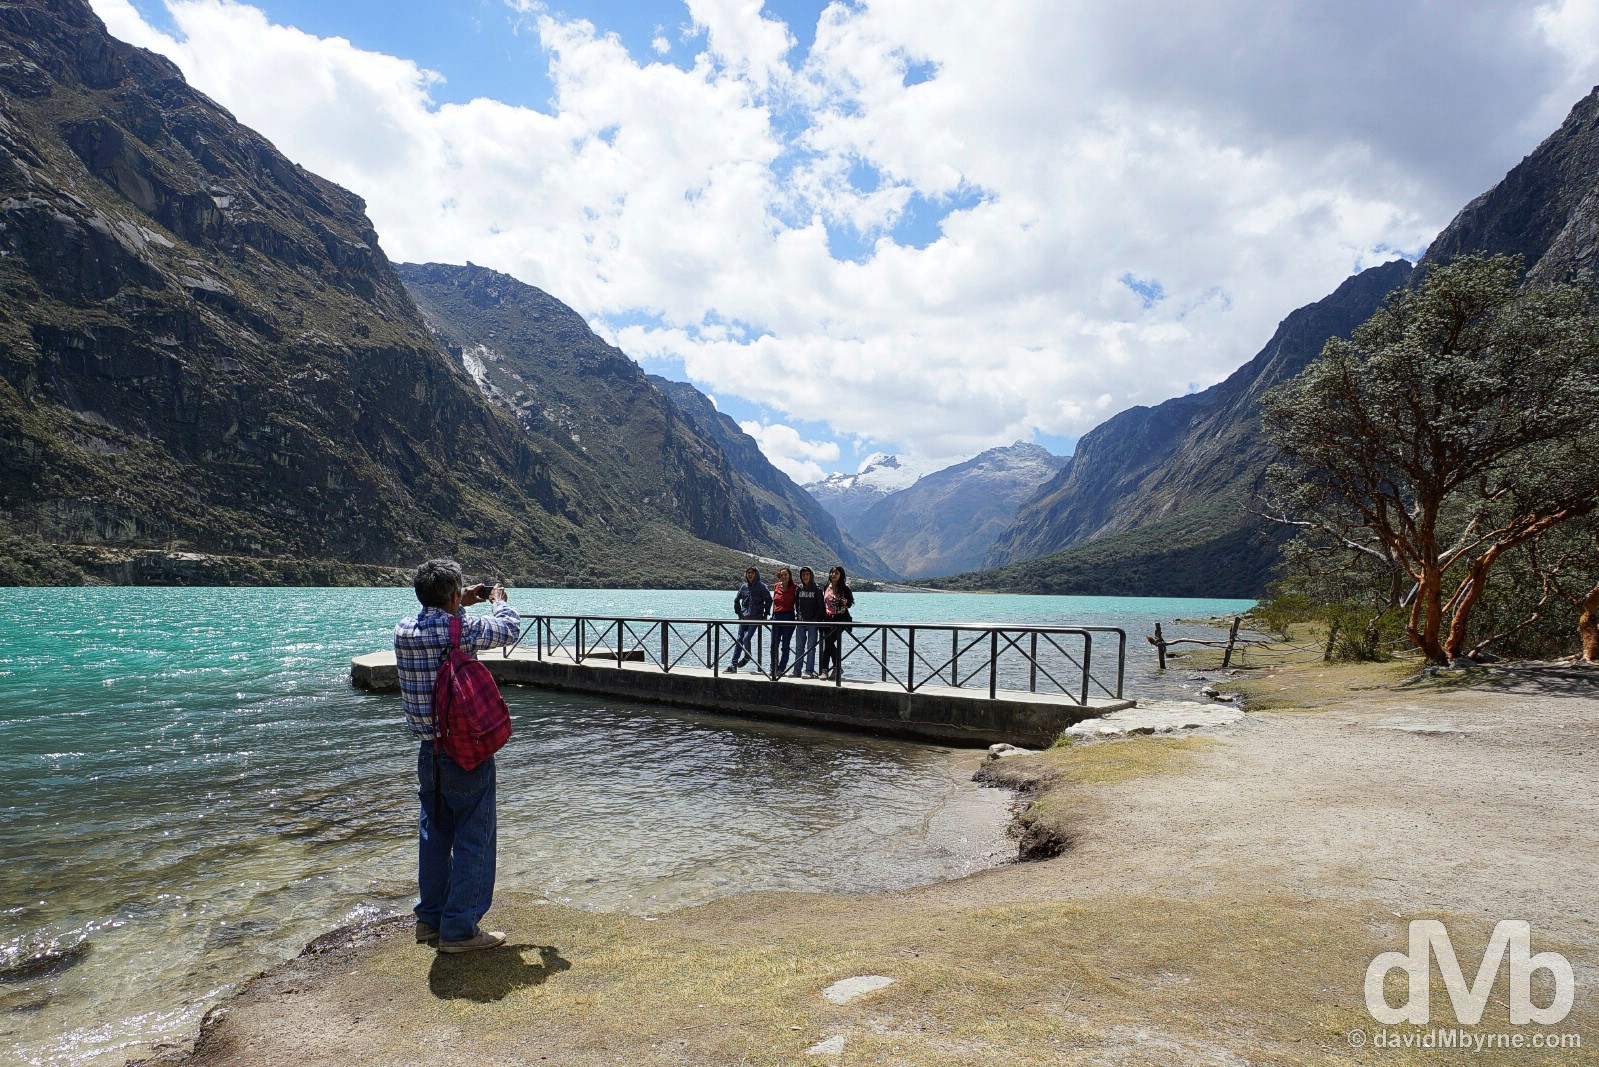 Pictures at Lago (Lake) Chinan Cocha in Parque Nacional Huascaran, Ancash, Peru. August 5, 2015.